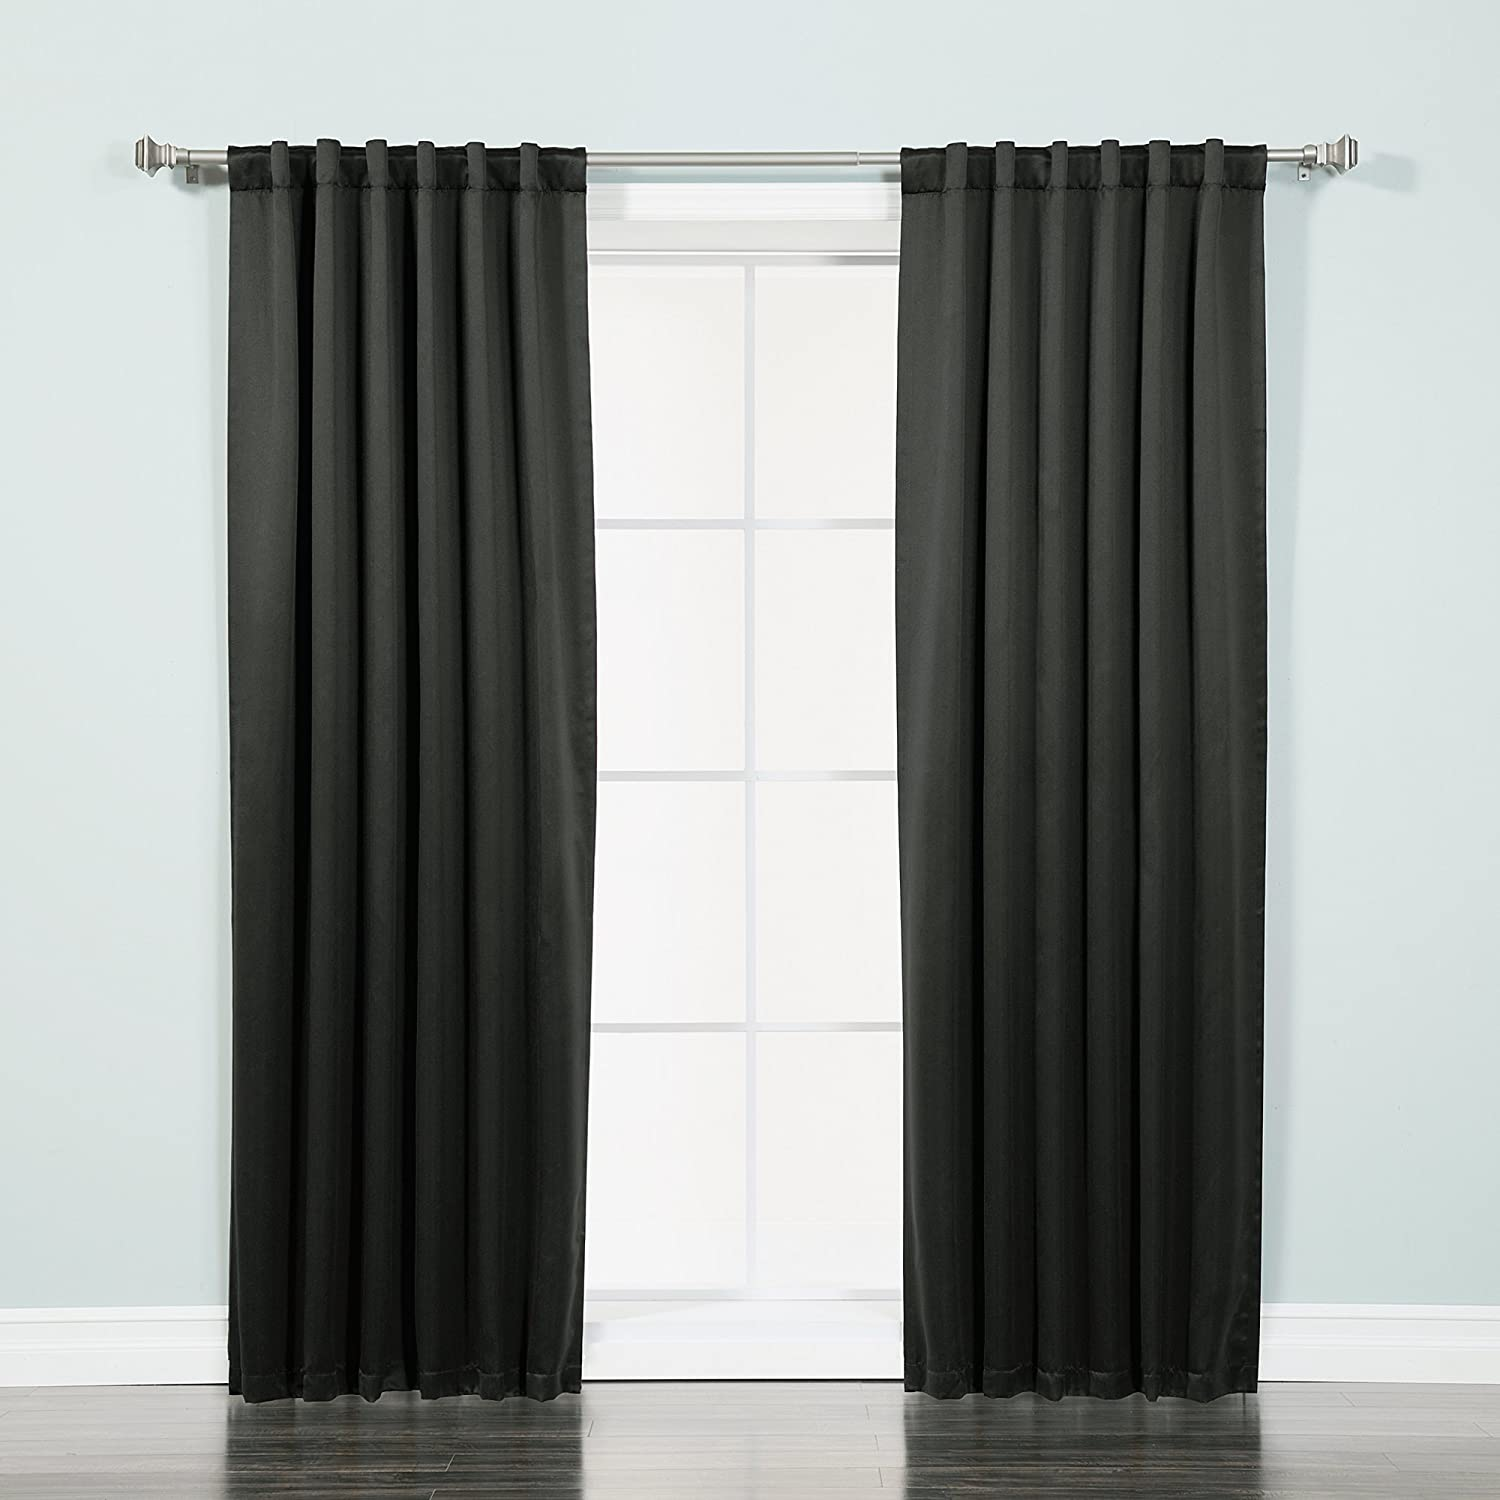 home c thermal curtains birds curtain insulatedt insulated fannie two blackou coral